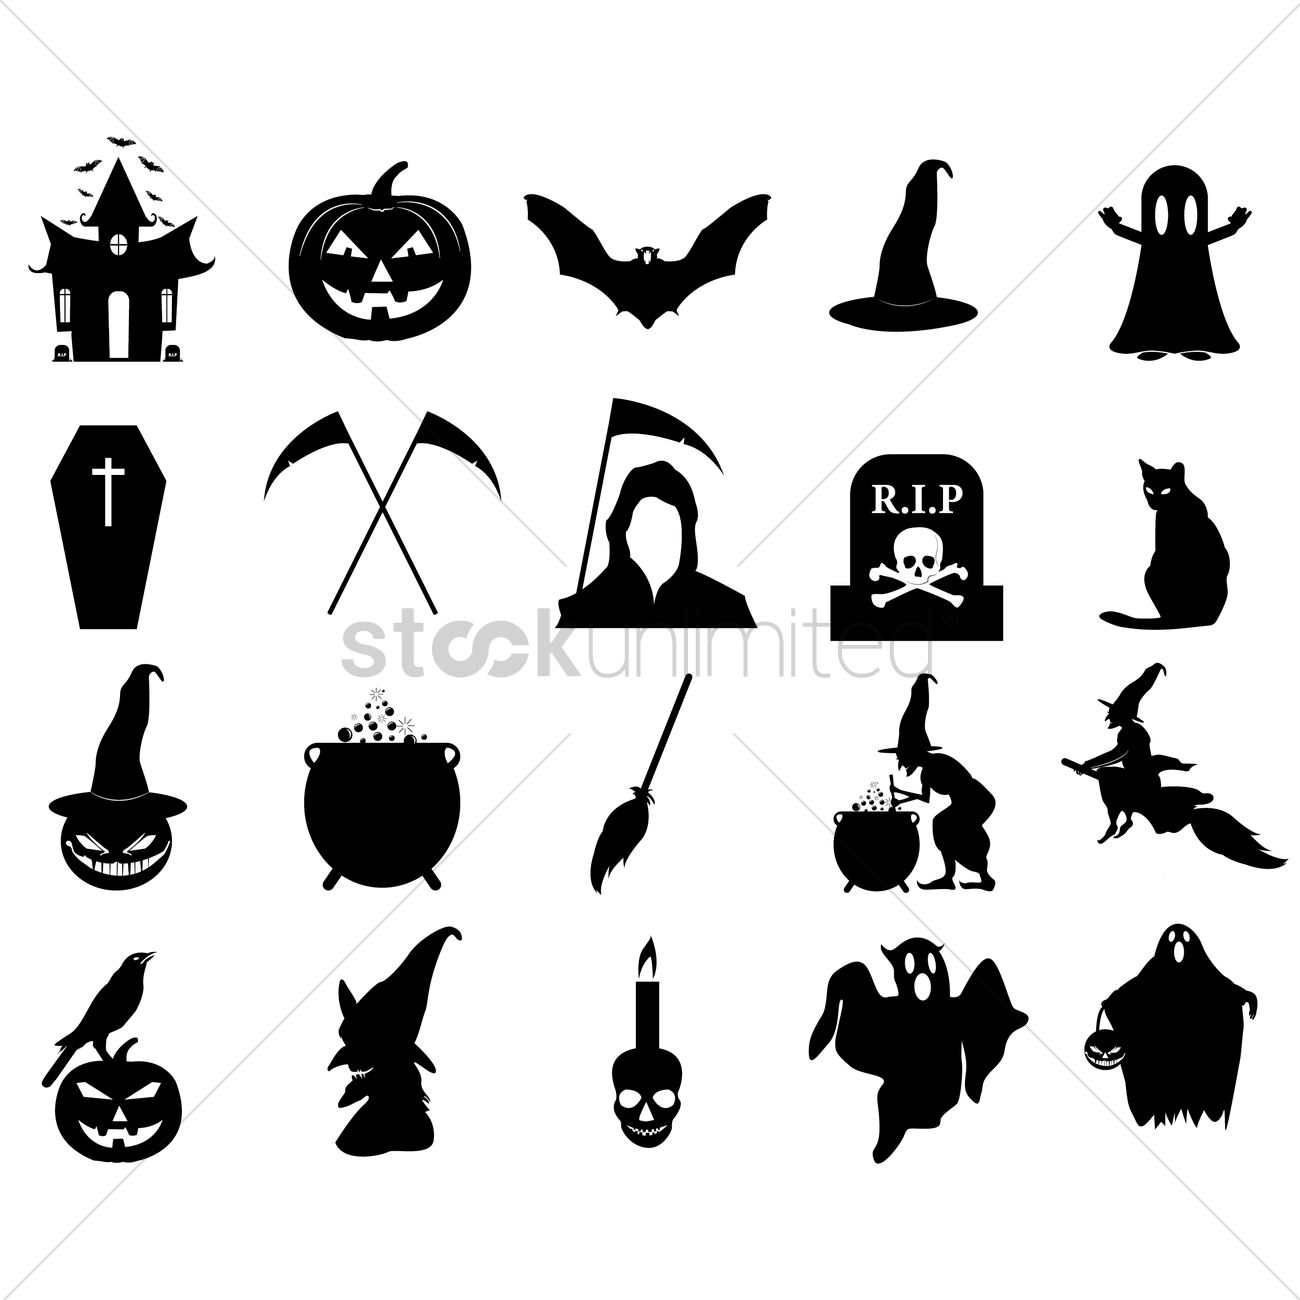 Halloween silhouette icons Vector Image - 1483369 | StockUnlimited